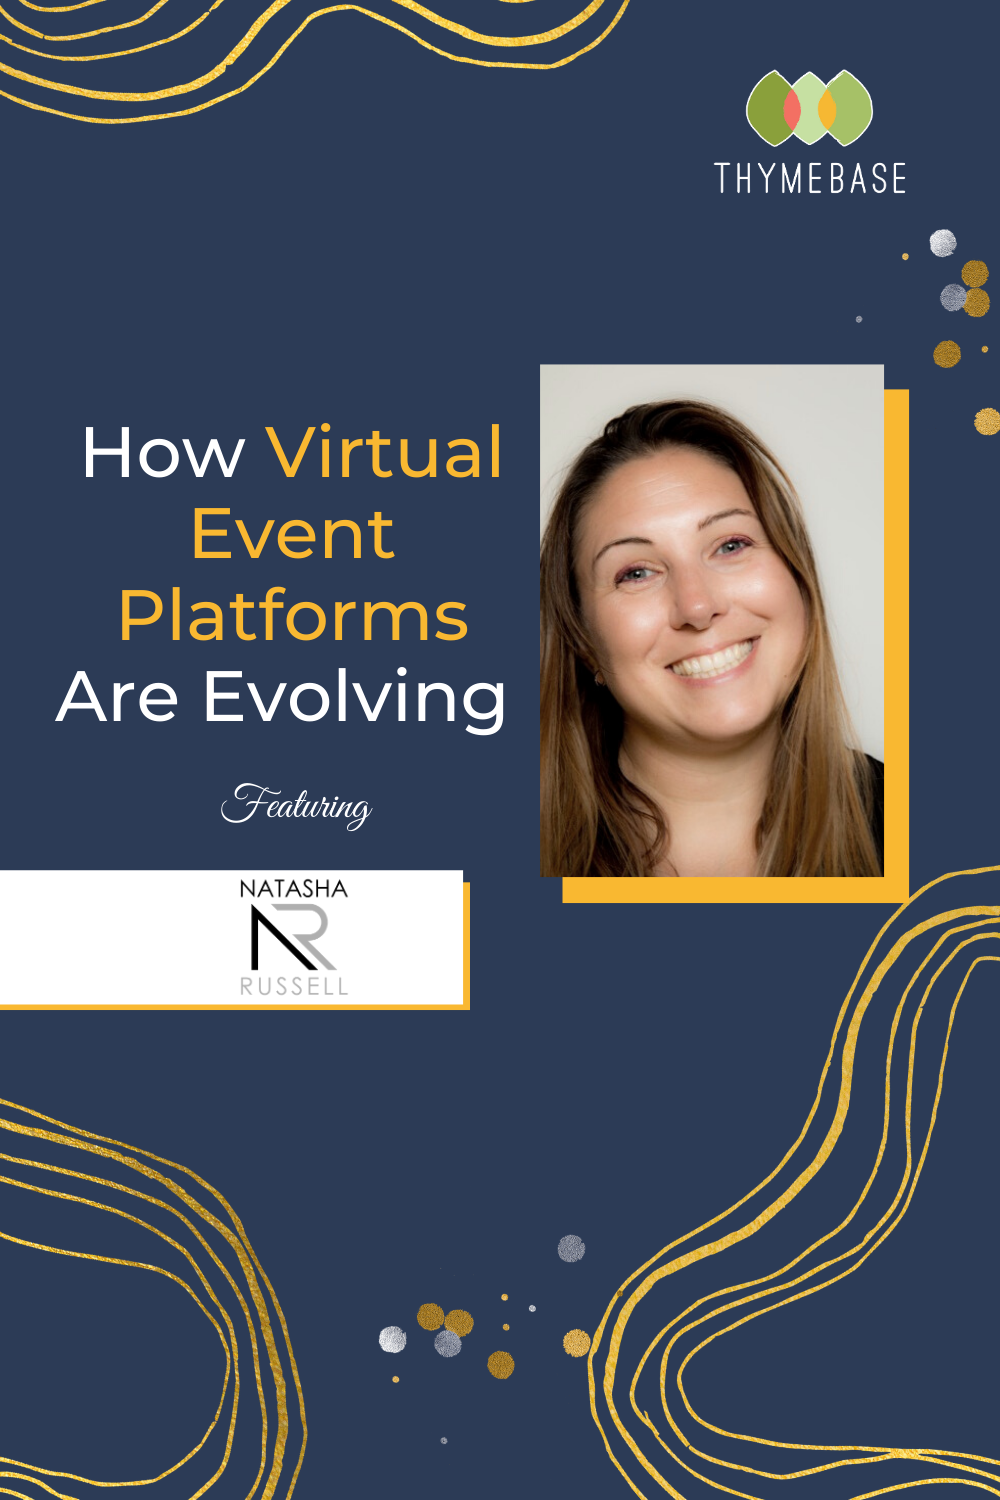 The virtual event space is more than just Zoom meetings. But how do you find the right virtual event platform for your event? . . . . . #eventtech #eventtechnology #eventprofs #event #eventdesign #eventmanagement #eventplanner #eventplanners #eventplanning #events #meetings #partyplanner #weddingplanner #corporateevents #thymebase